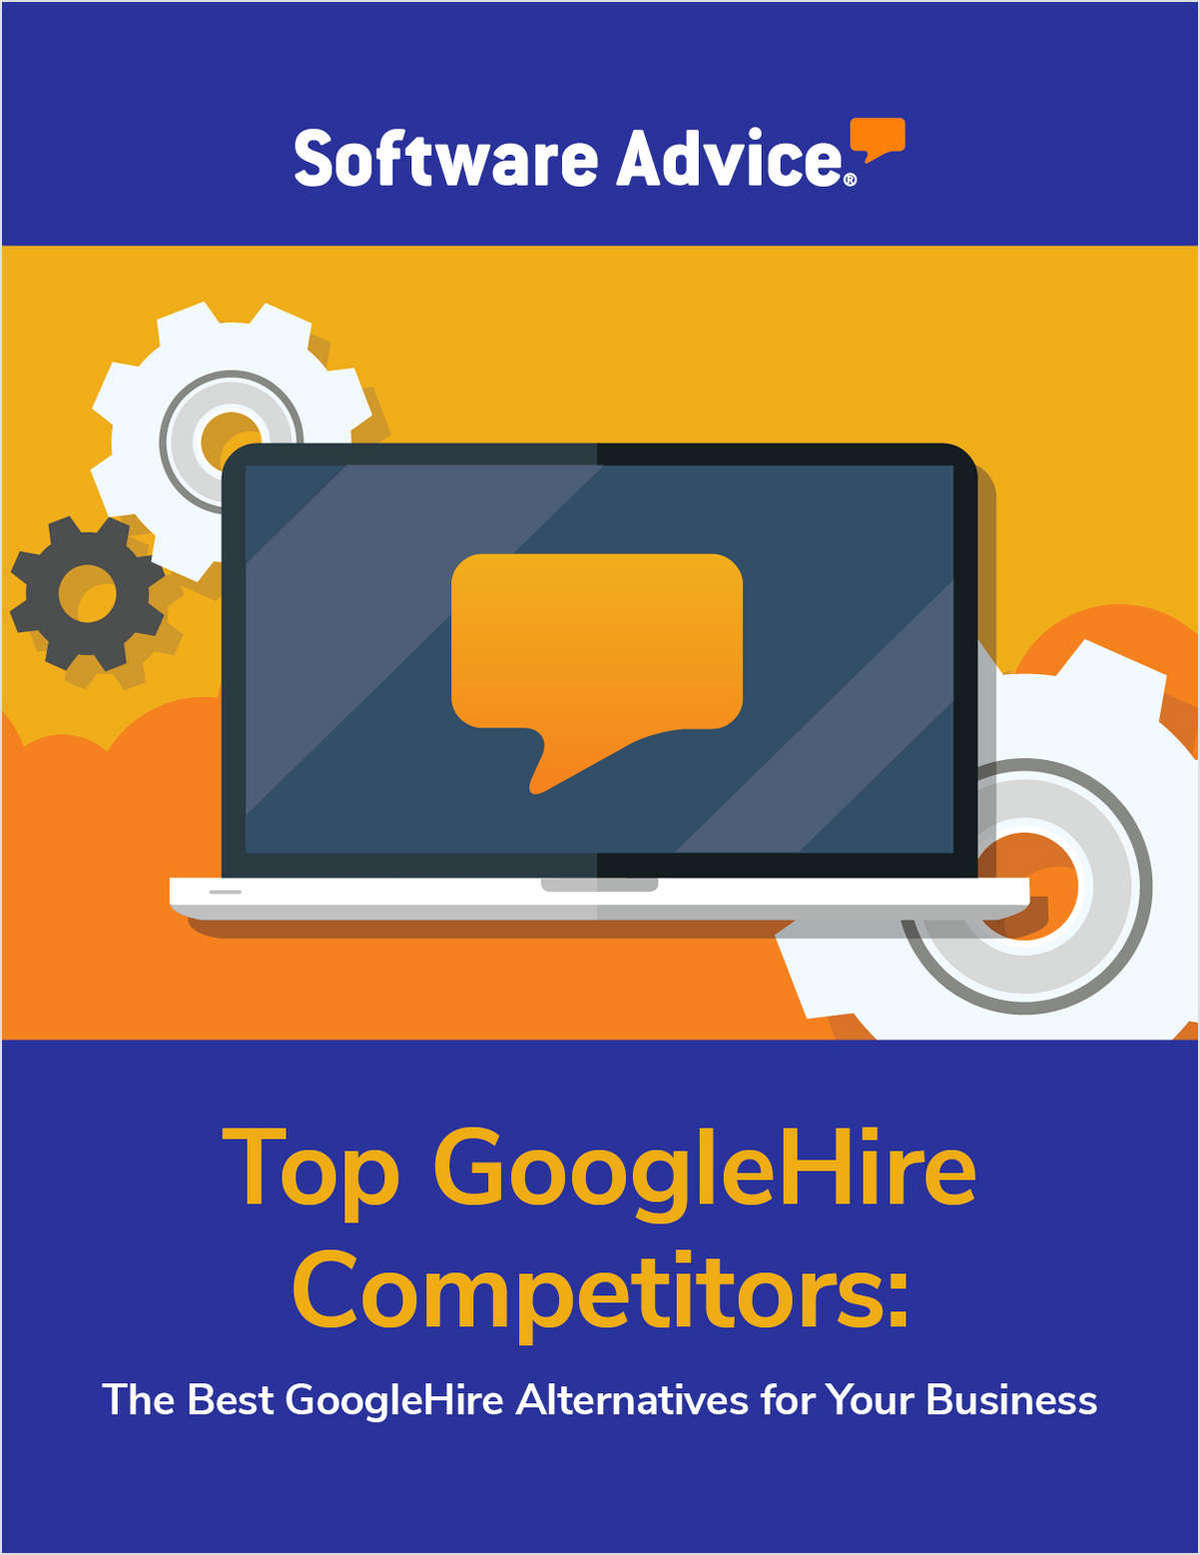 5 GoogleHire Alternatives for Your Business